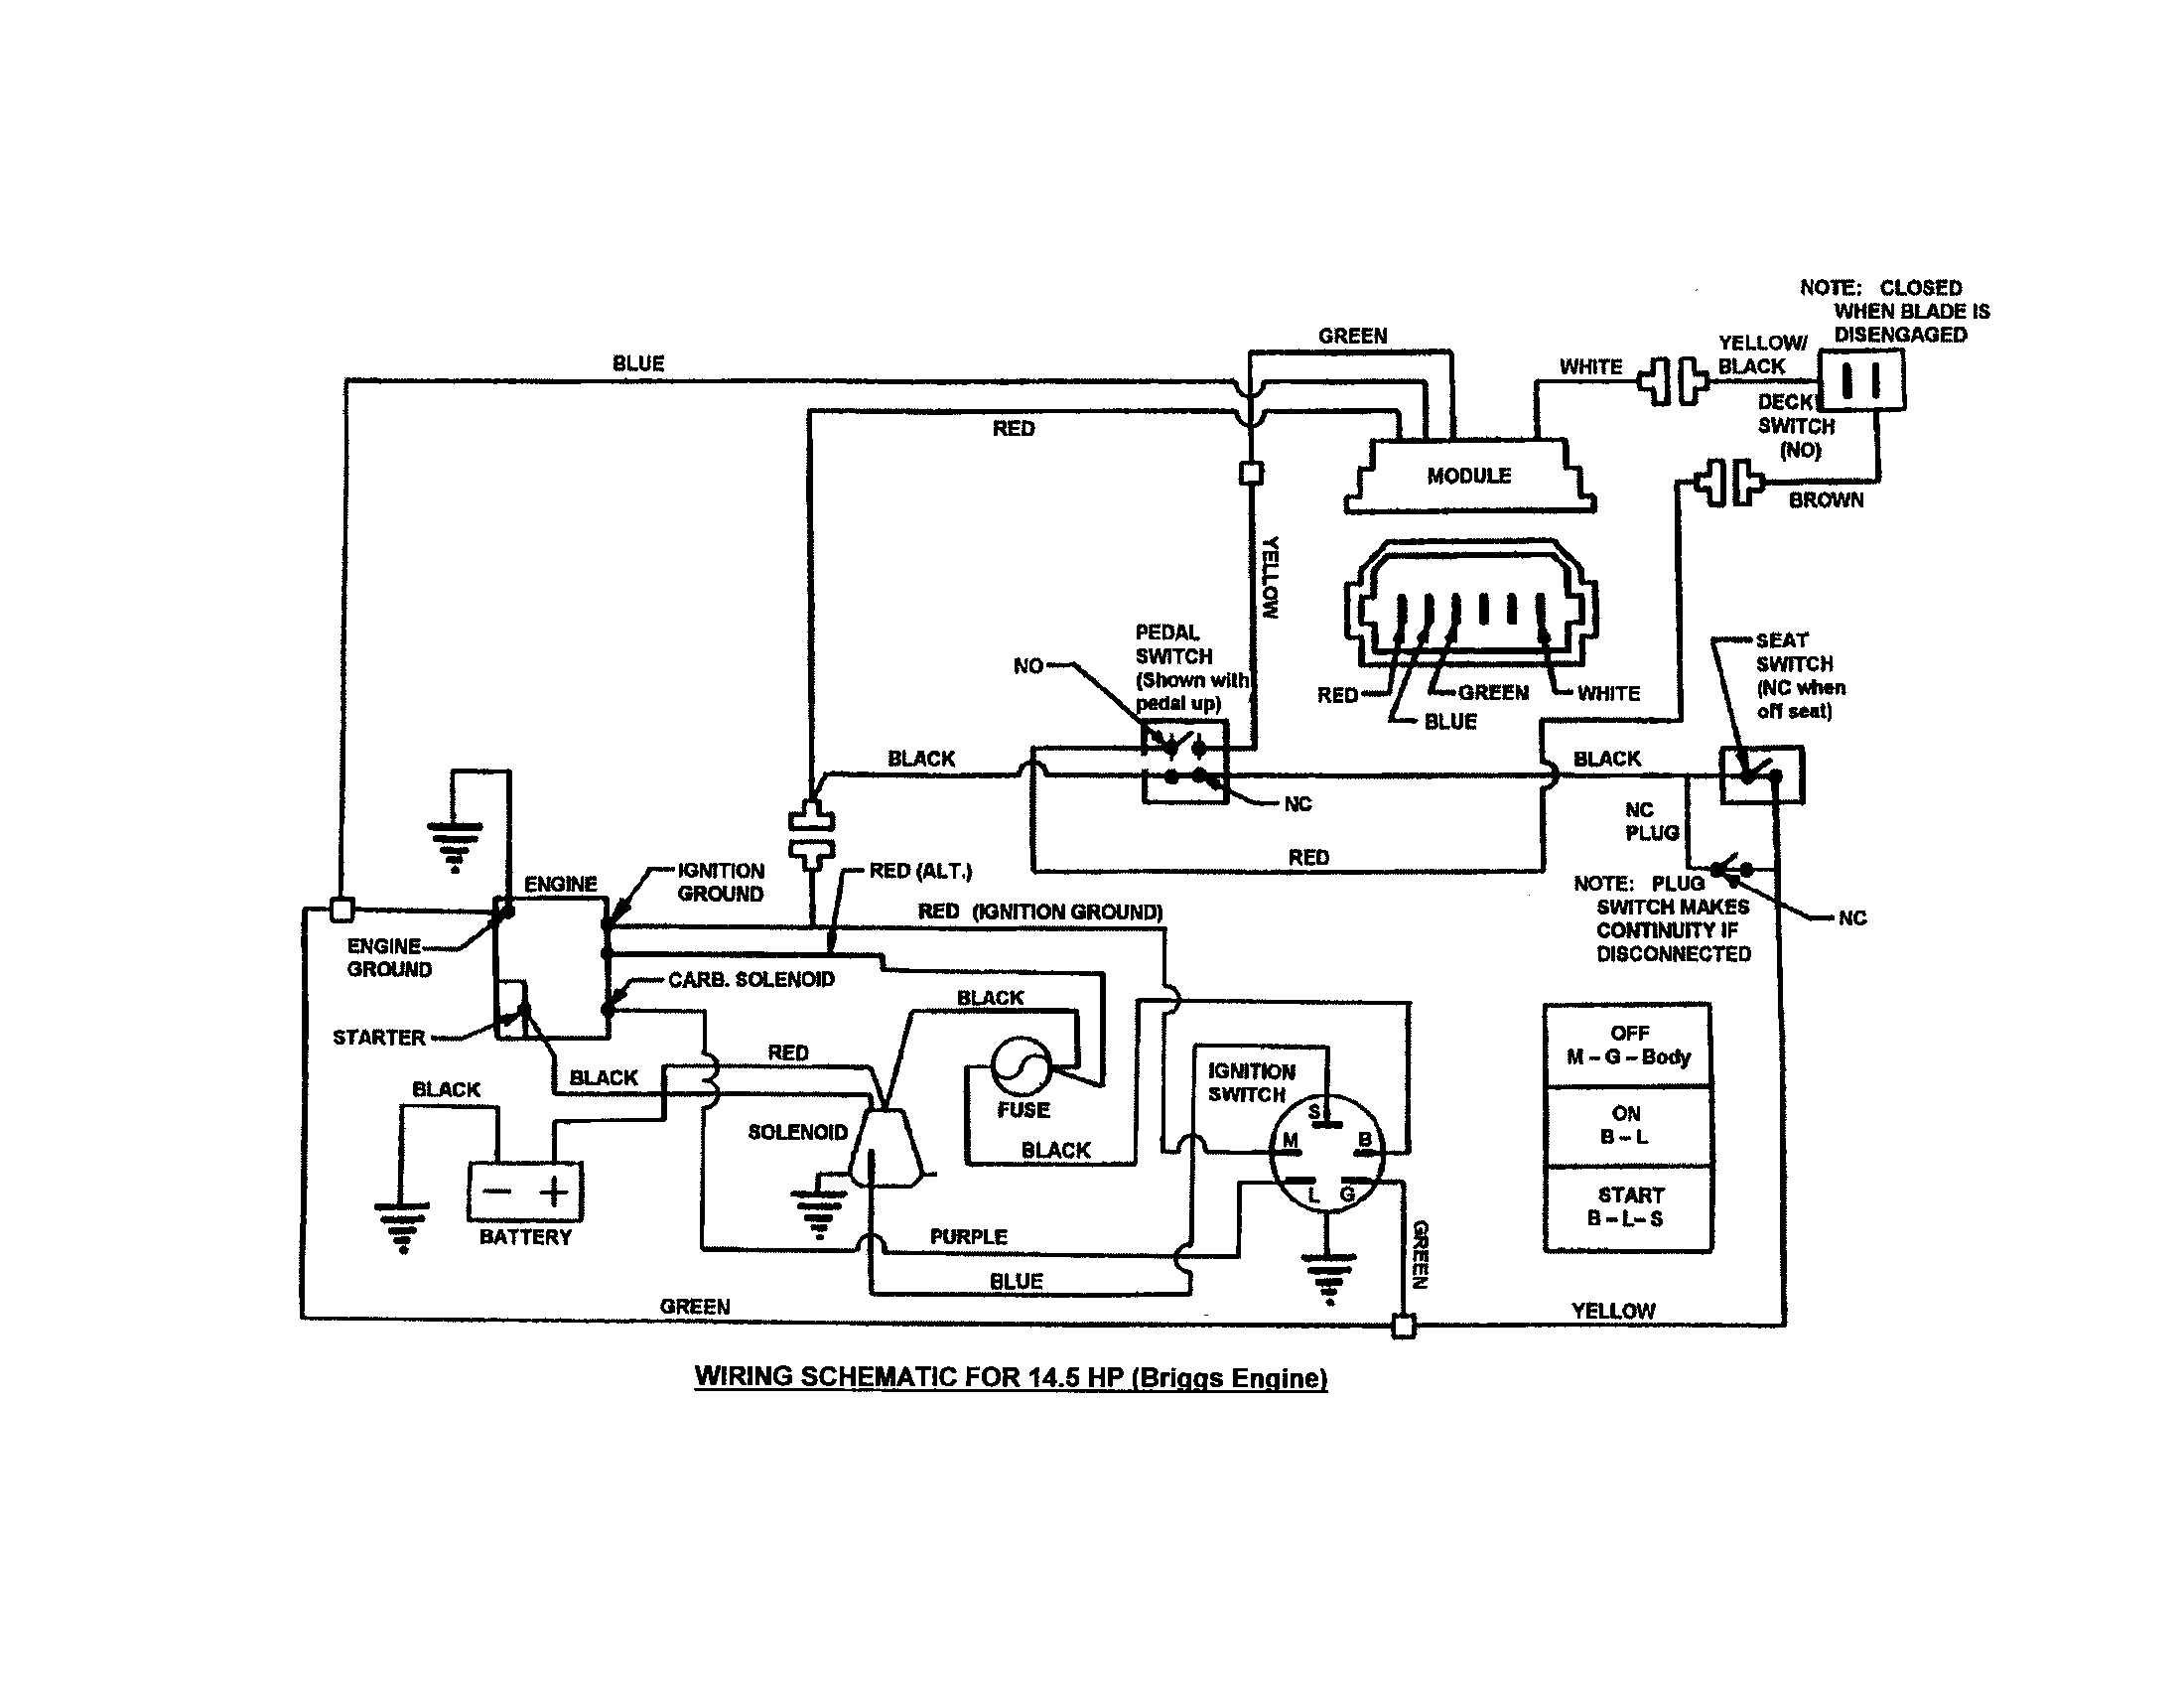 [DIAGRAM_1CA]  Briggs Stratton 16 Hp Twin Wiring Diagram 1993 Ford Explorer Fuse Box  Diagram - pontiac.anggur.astrea-construction.fr | 12 Hp Briggs Wiring Diagrambriggs 20 Diagram |  | ASTREA CONSTRUCTION